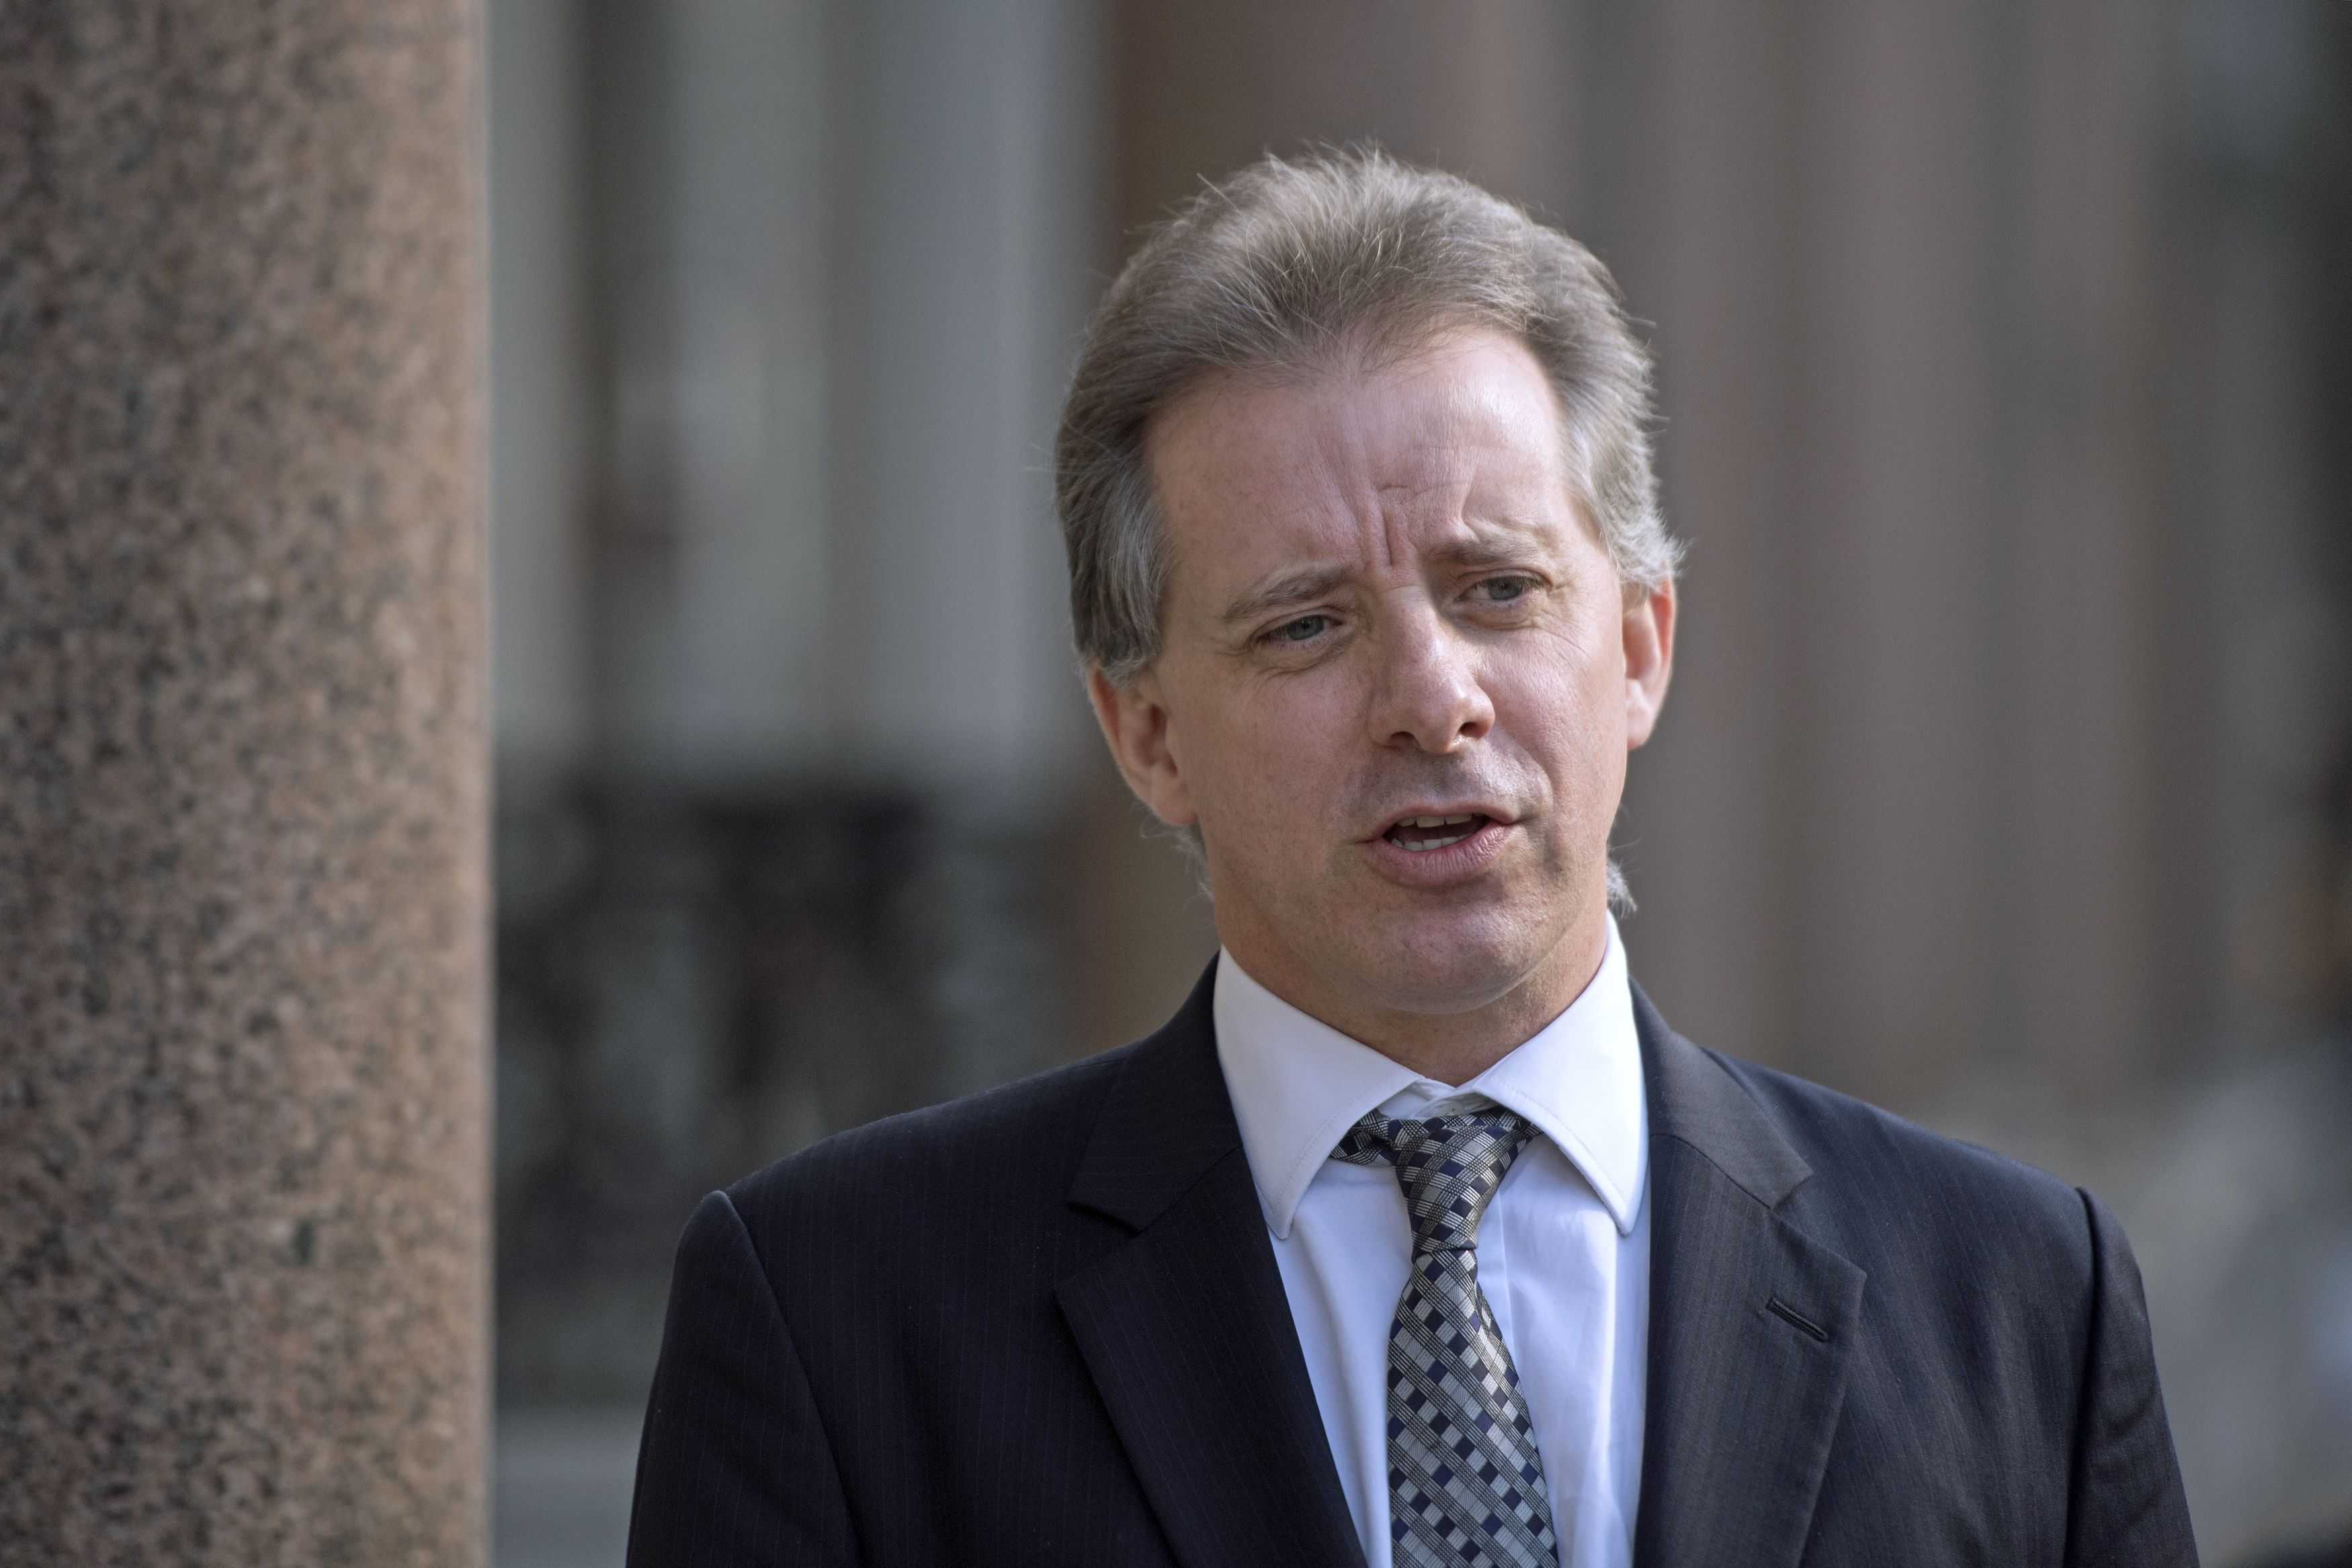 Senators Call For Criminal Probe Into Author Of Salacious Trump Dossier